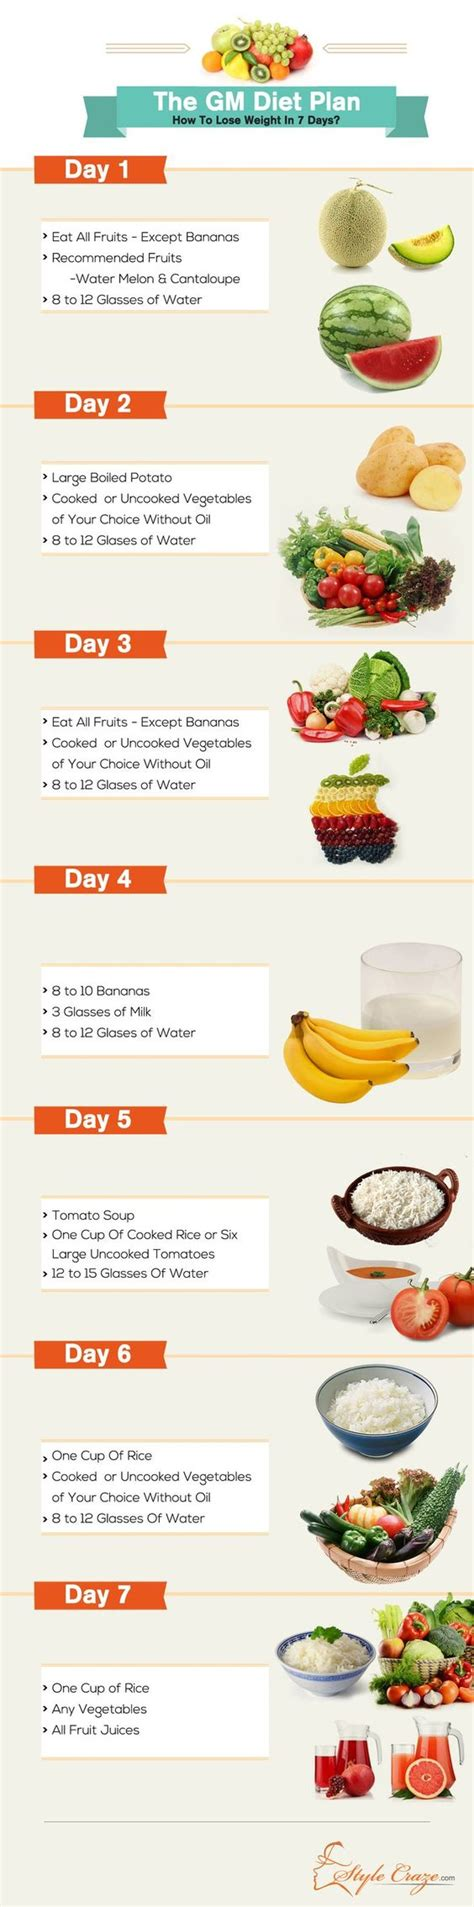 Detox Diets Websites by The Gm Diet Plan How To Lose Weight In Just 7 Days To